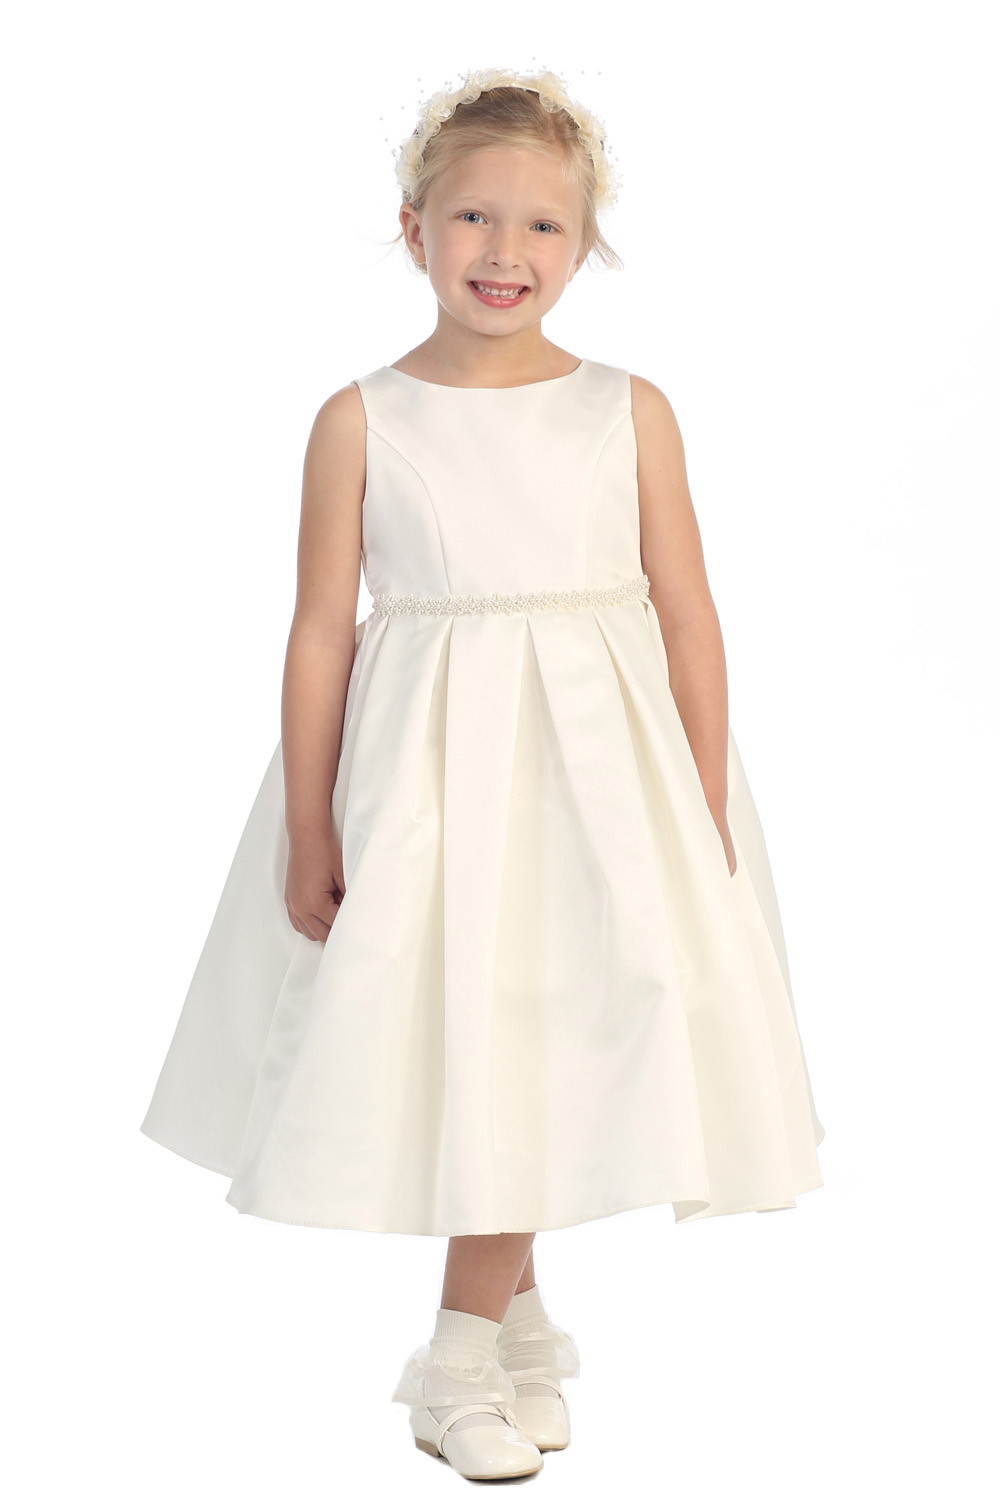 Flower Girls Dresses For Wedding Gowns A-line Girl Birthday Party Dress Fashion Girls Pageant Dresses Mother Daughter Dresses new white ivory nice spaghetti straps sequined knee length a line flower girl dress beautiful square collar birthday party gowns